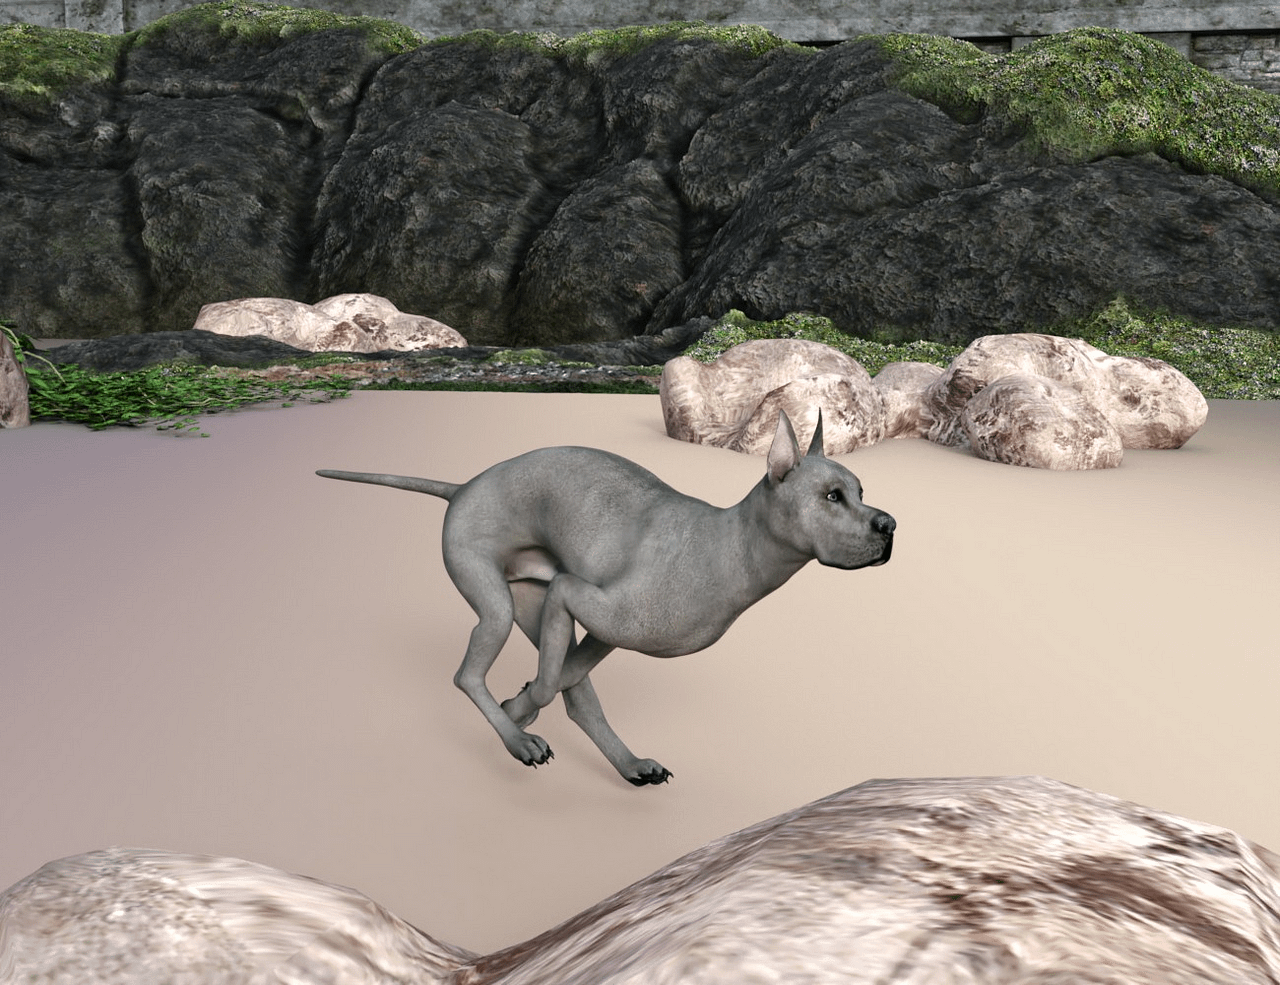 daz studio animation of a running dog